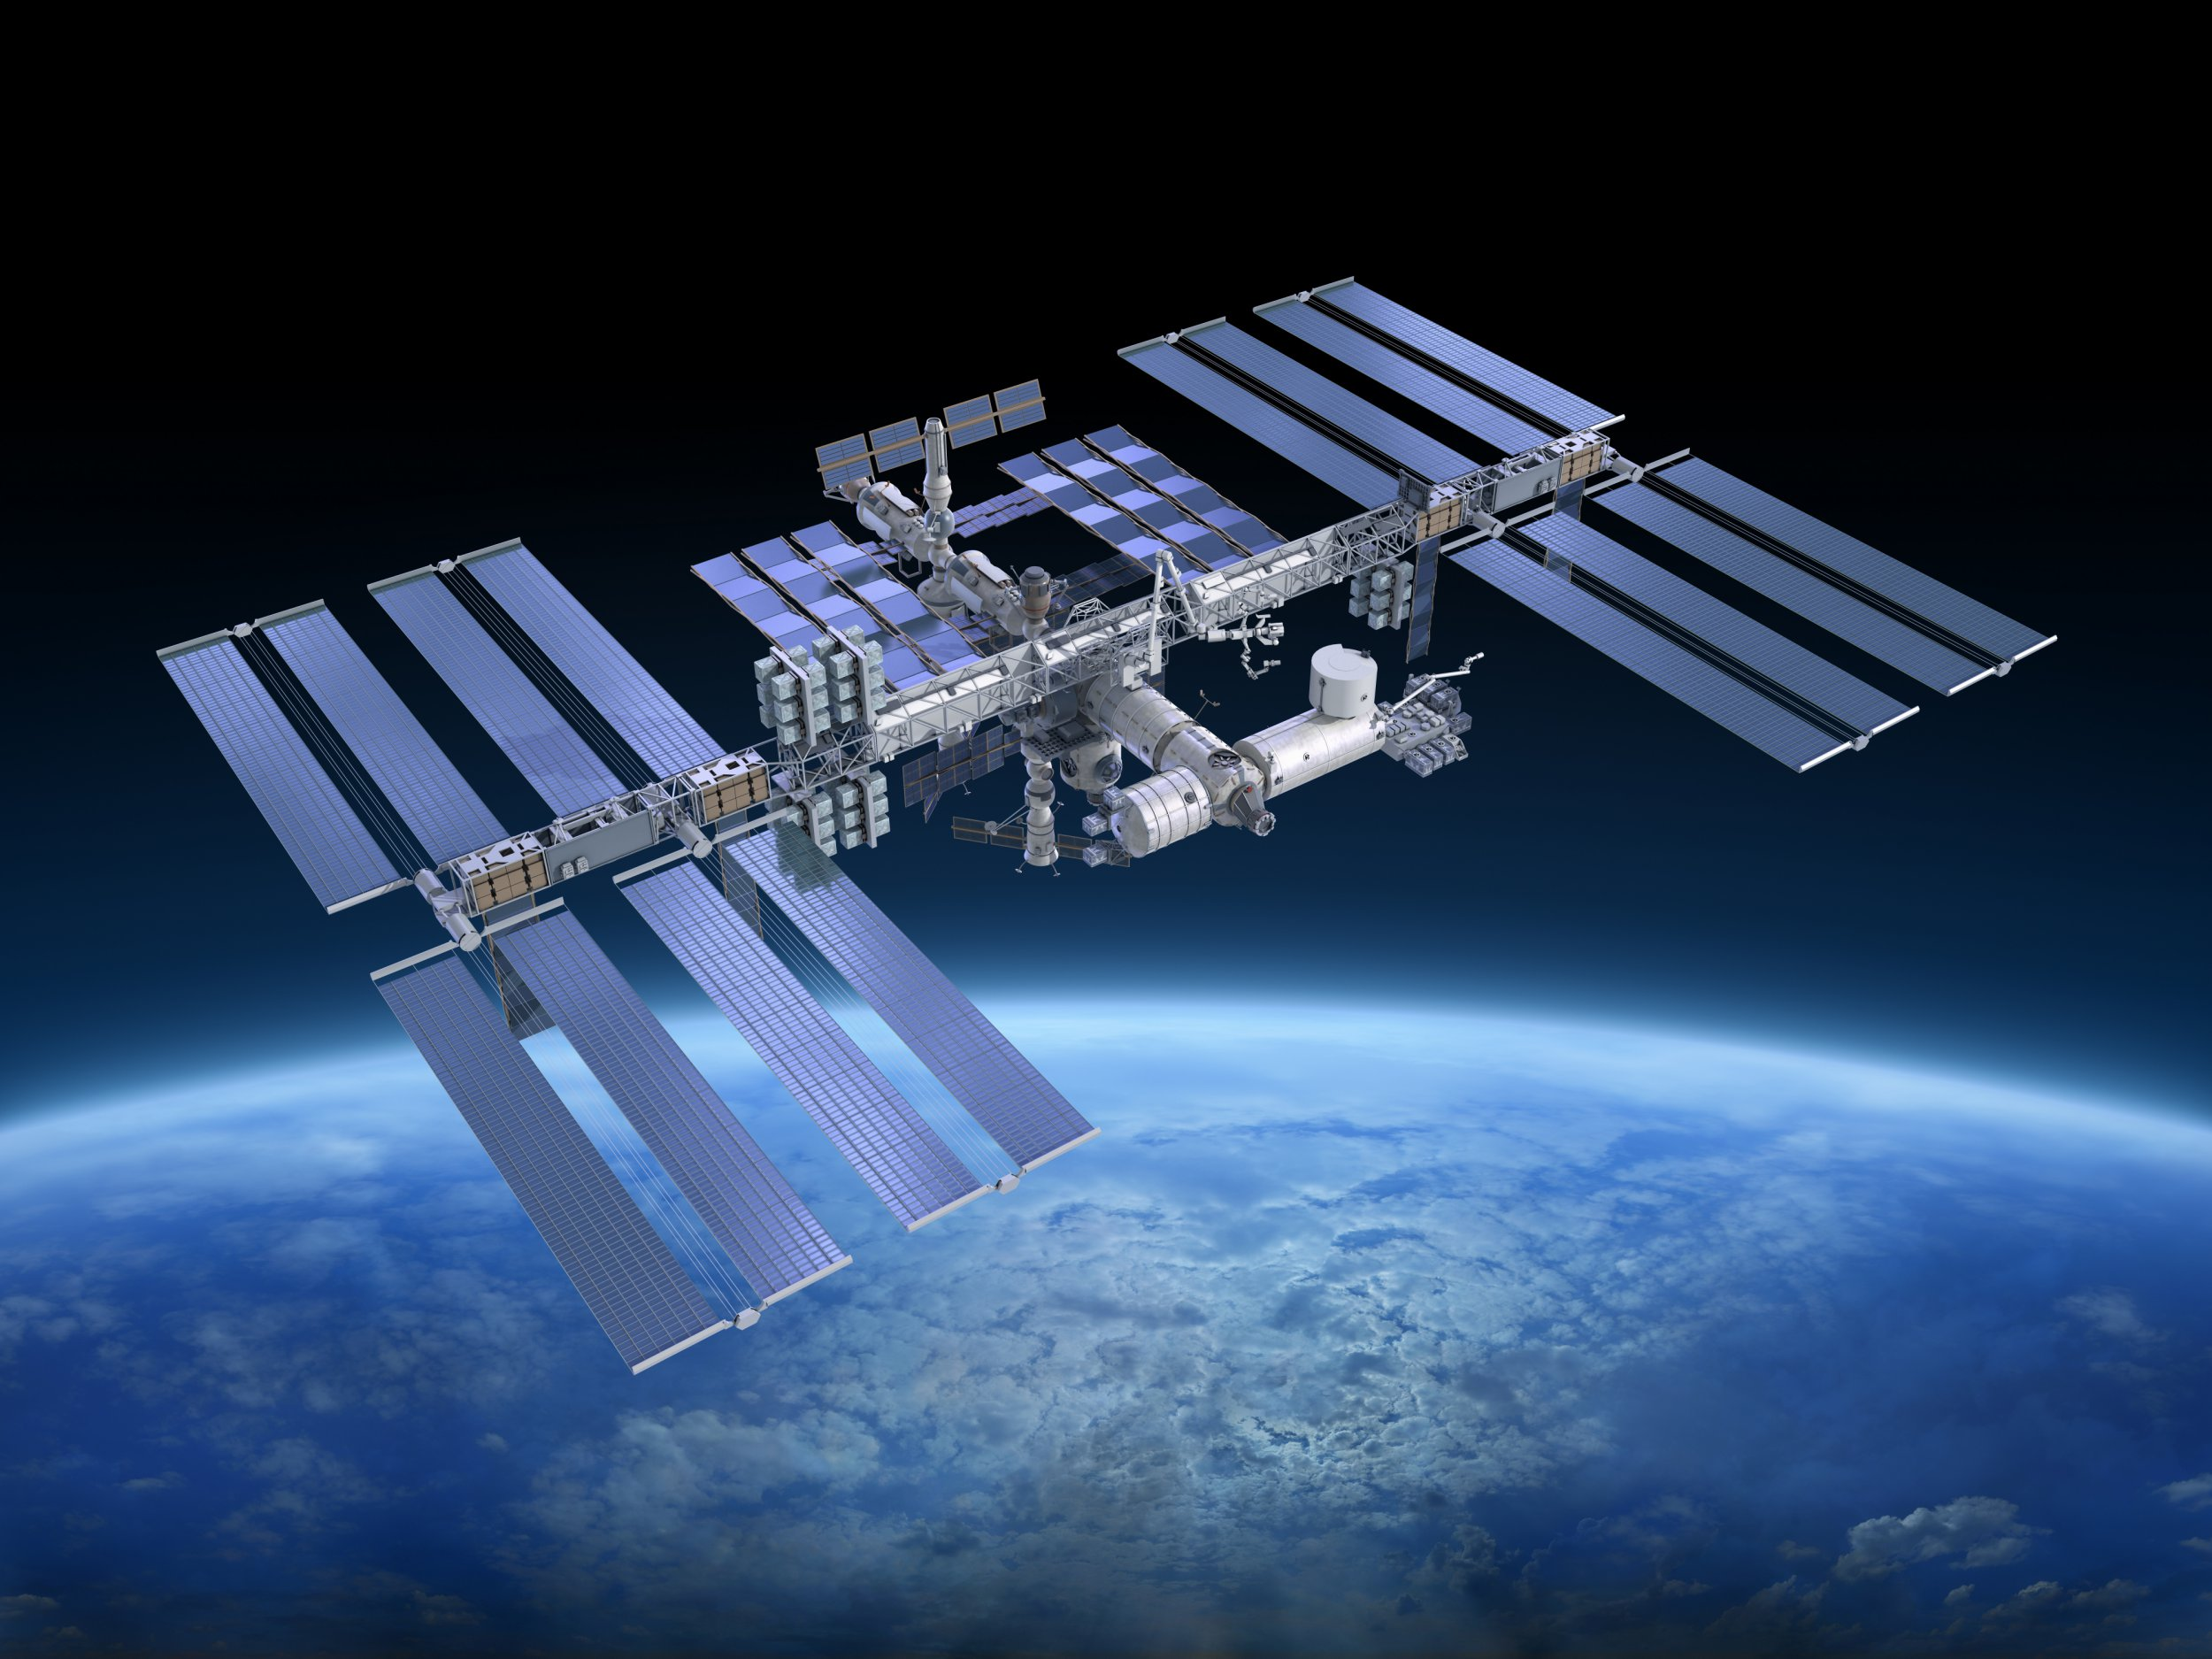 Nasa: Astronauts are suffering hideous herpes outbreaks up in space